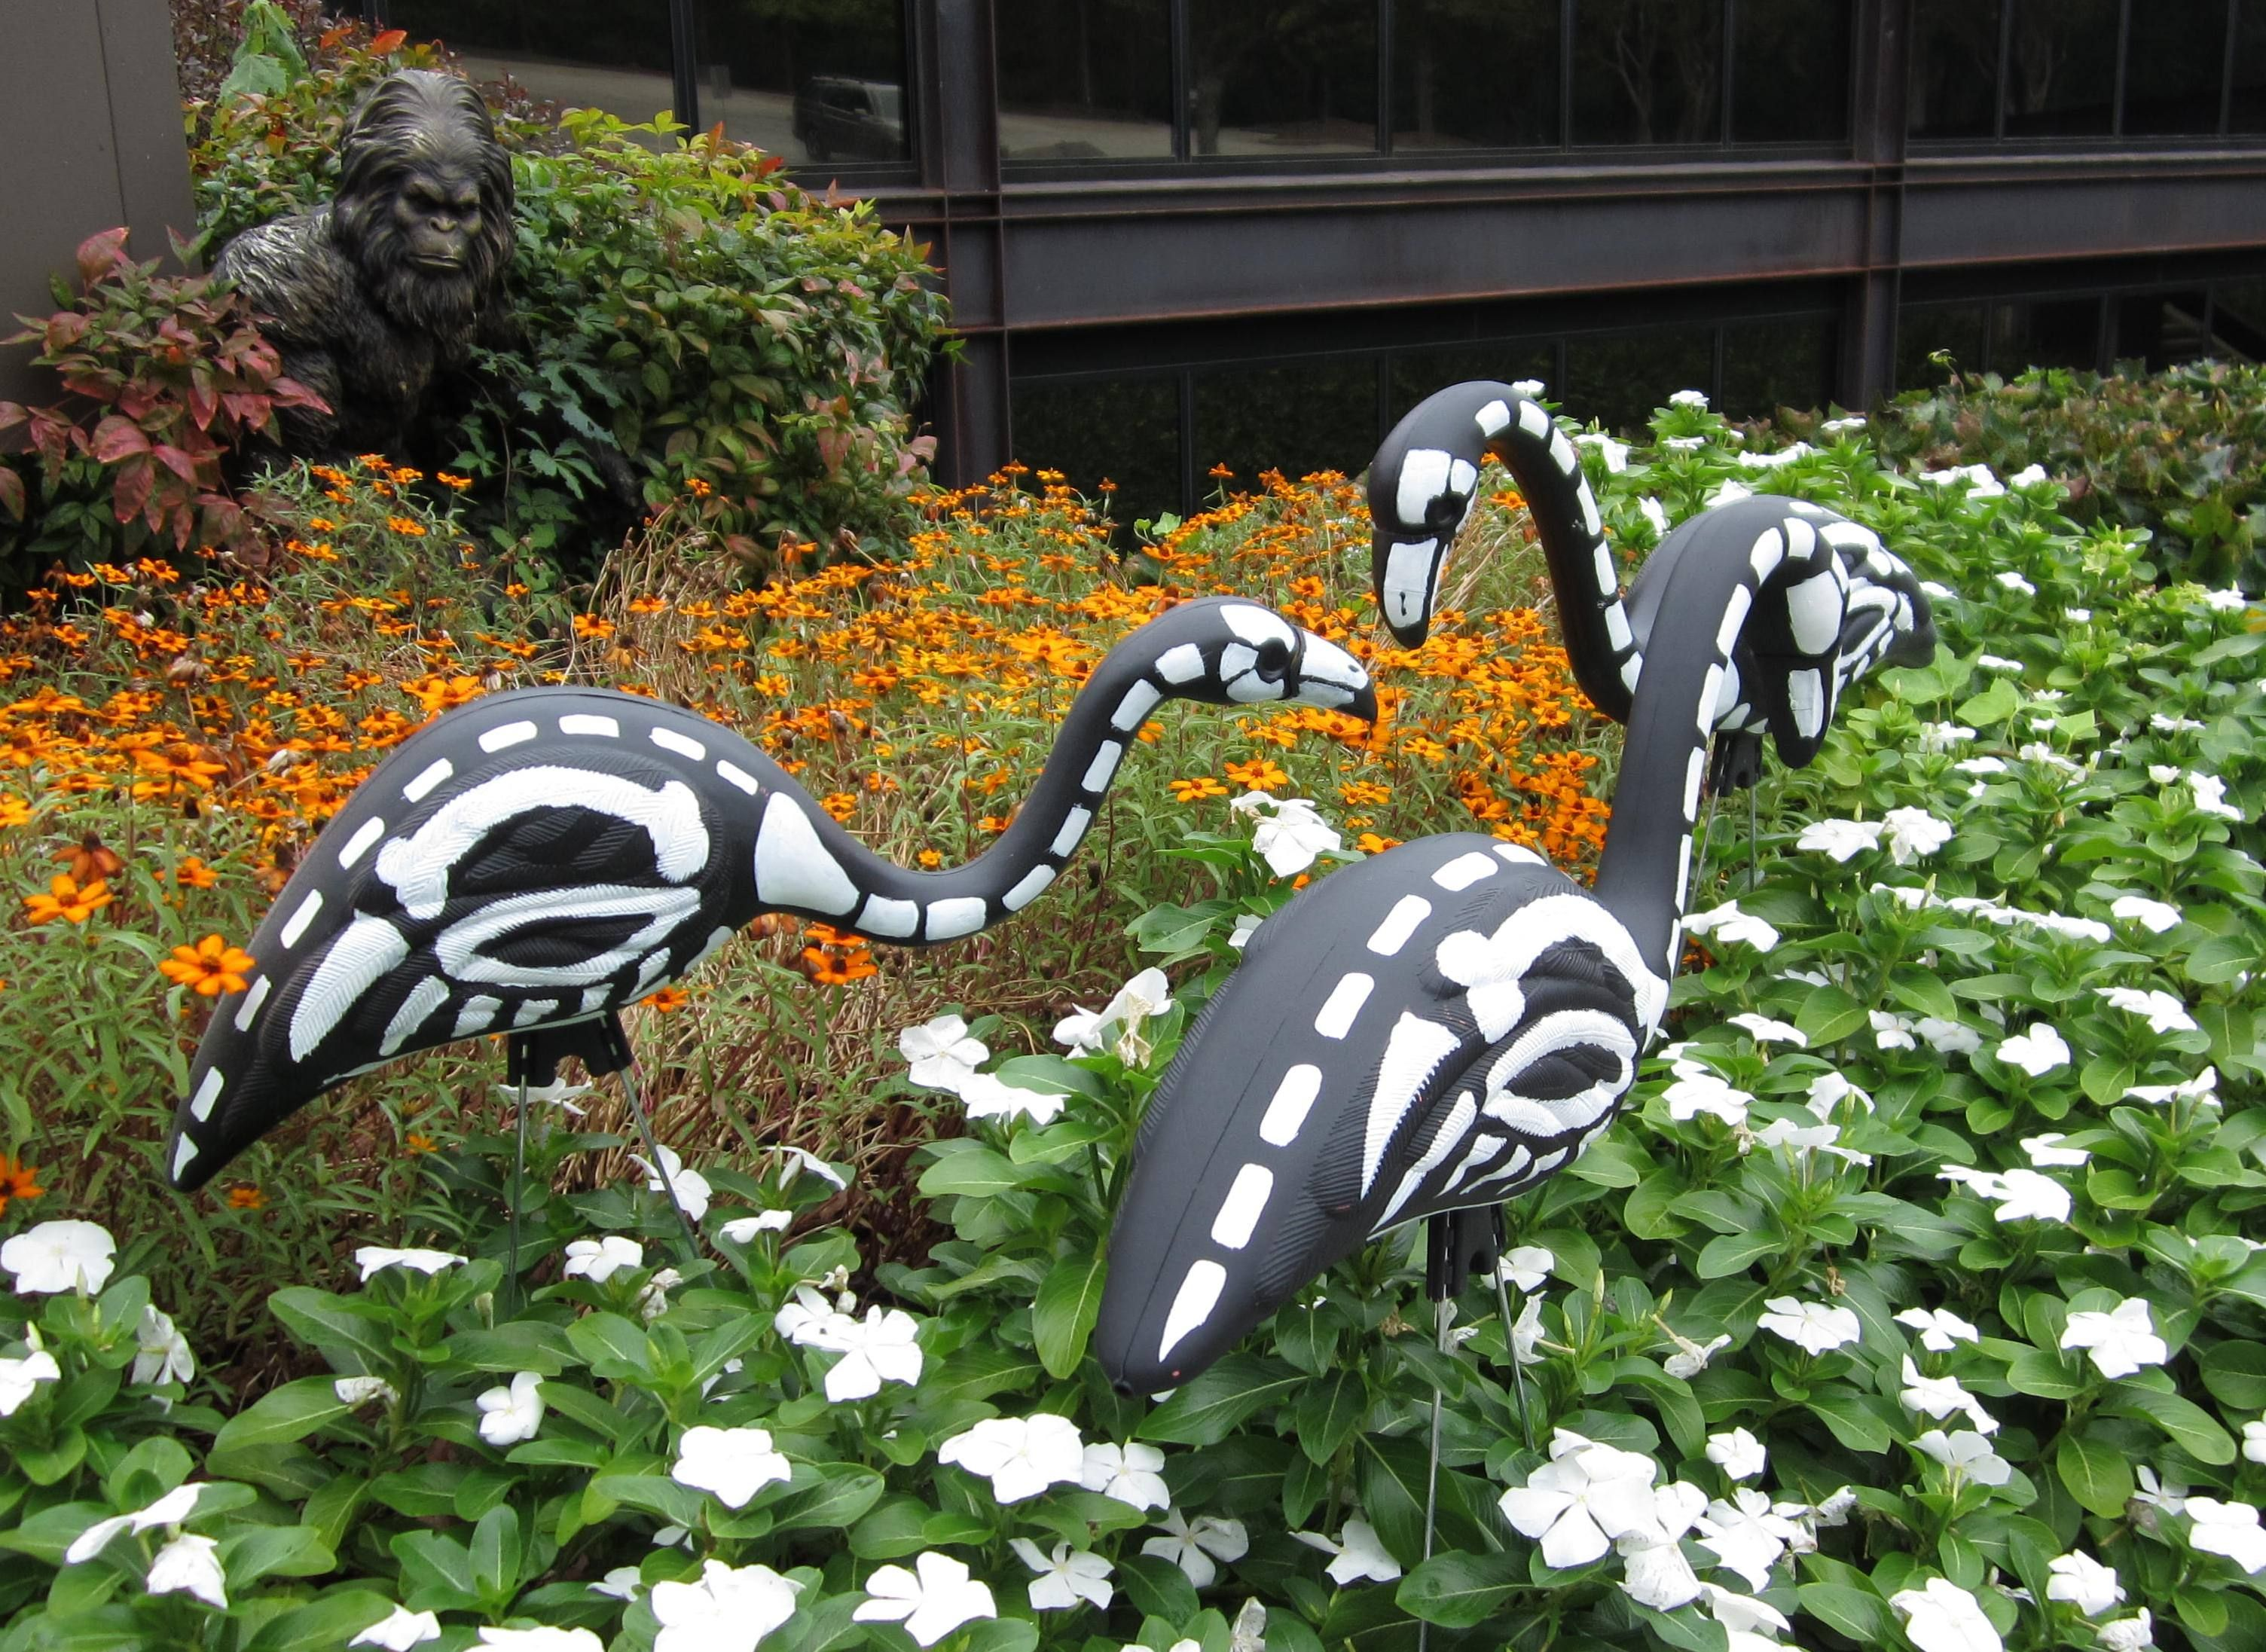 Skeleton Flamingos!   communityhomedepot/t5/Halloween - diy outdoor halloween decorations